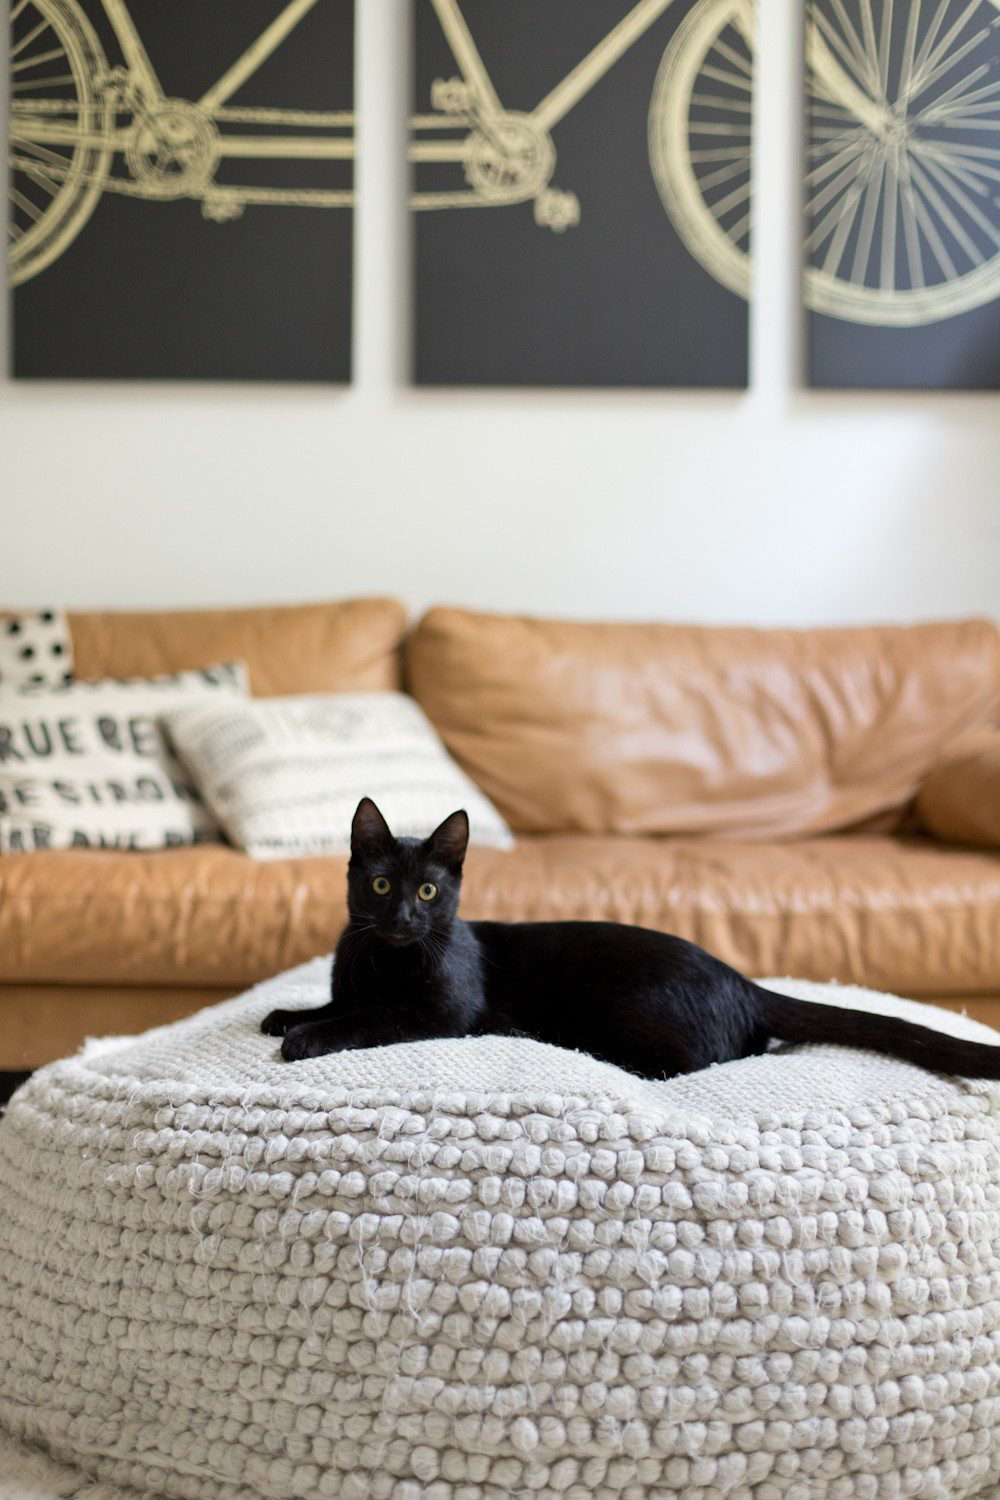 Kitten Care Tips: 5 Essentials you Need to Raise a Cat by popular lifestyel blogger Tabitha Blue of Fresh Mommy Blog: image of black cat sitting on a cream woven floor ottoman in front of a camel colored leather couch with mud cloth throw pillows.